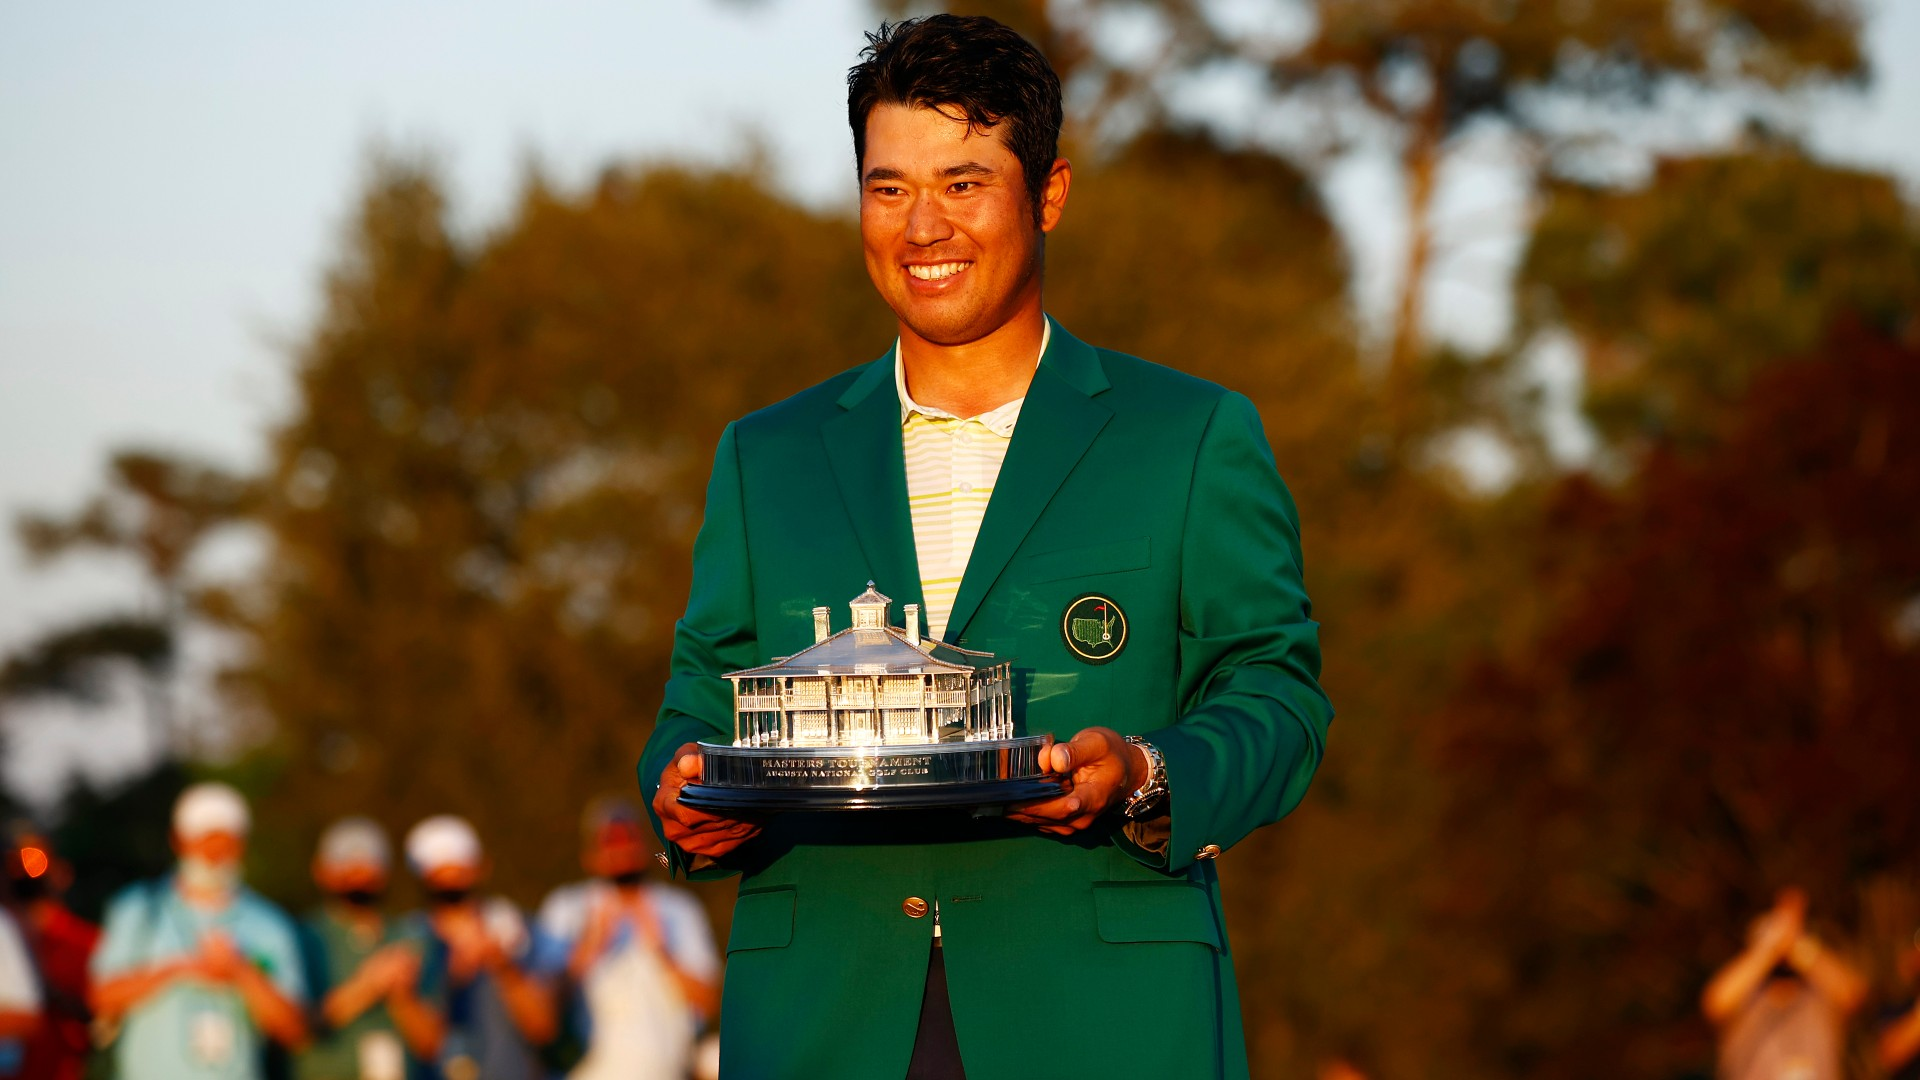 The Masters: Matsuyama hoping to be pioneer for Japanese golf after winning historic green jacket